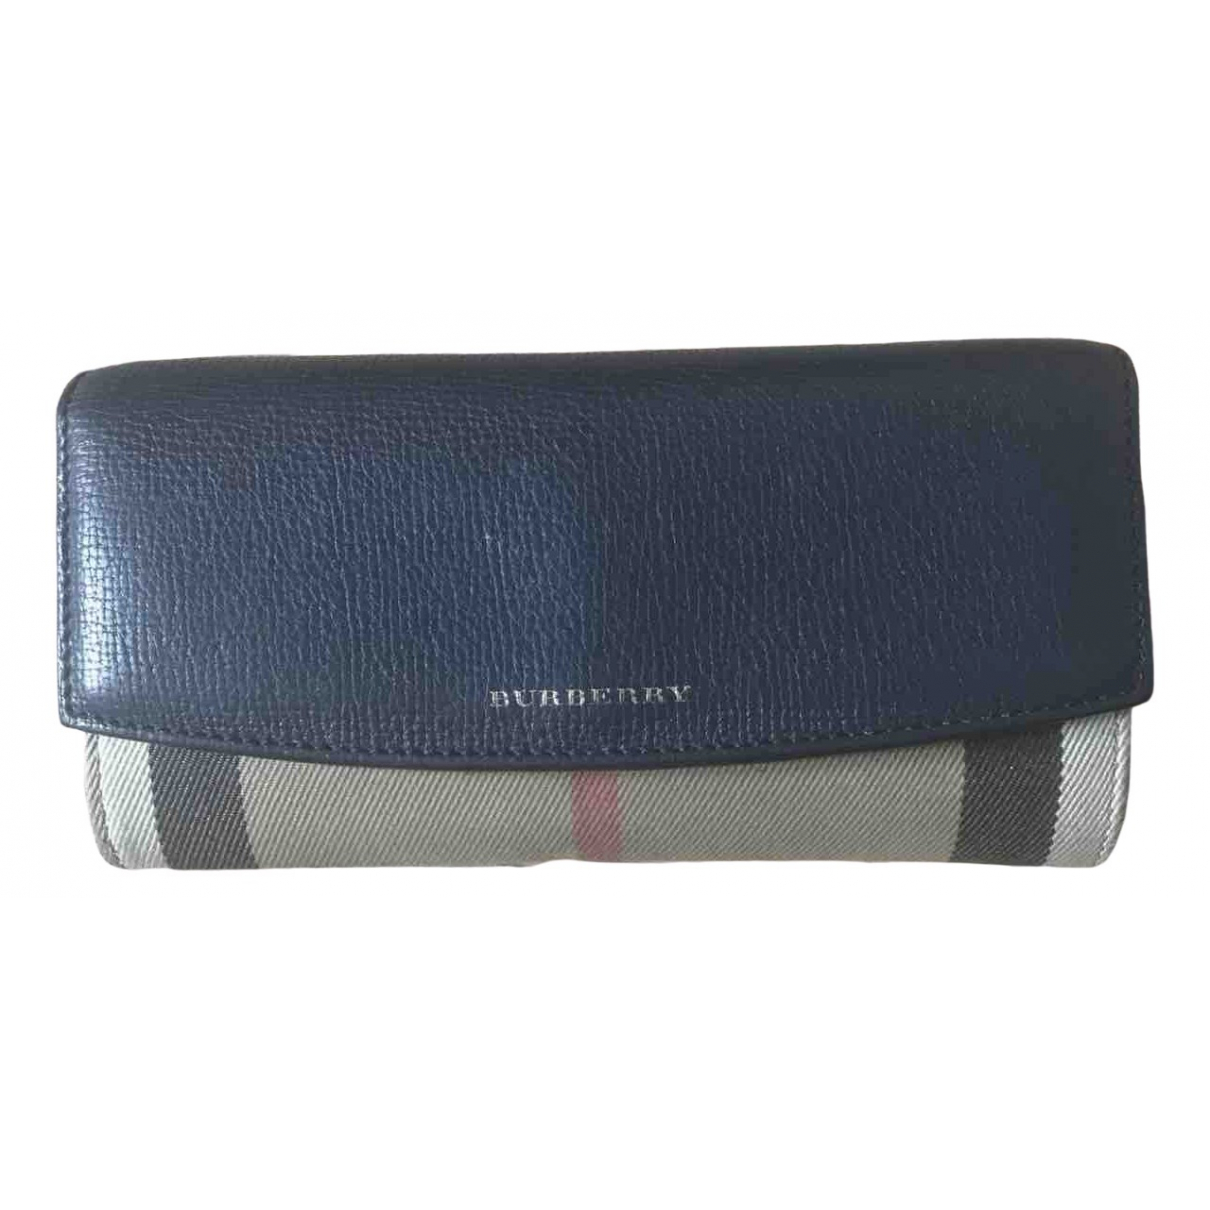 Burberry N Blue Leather wallet for Women N